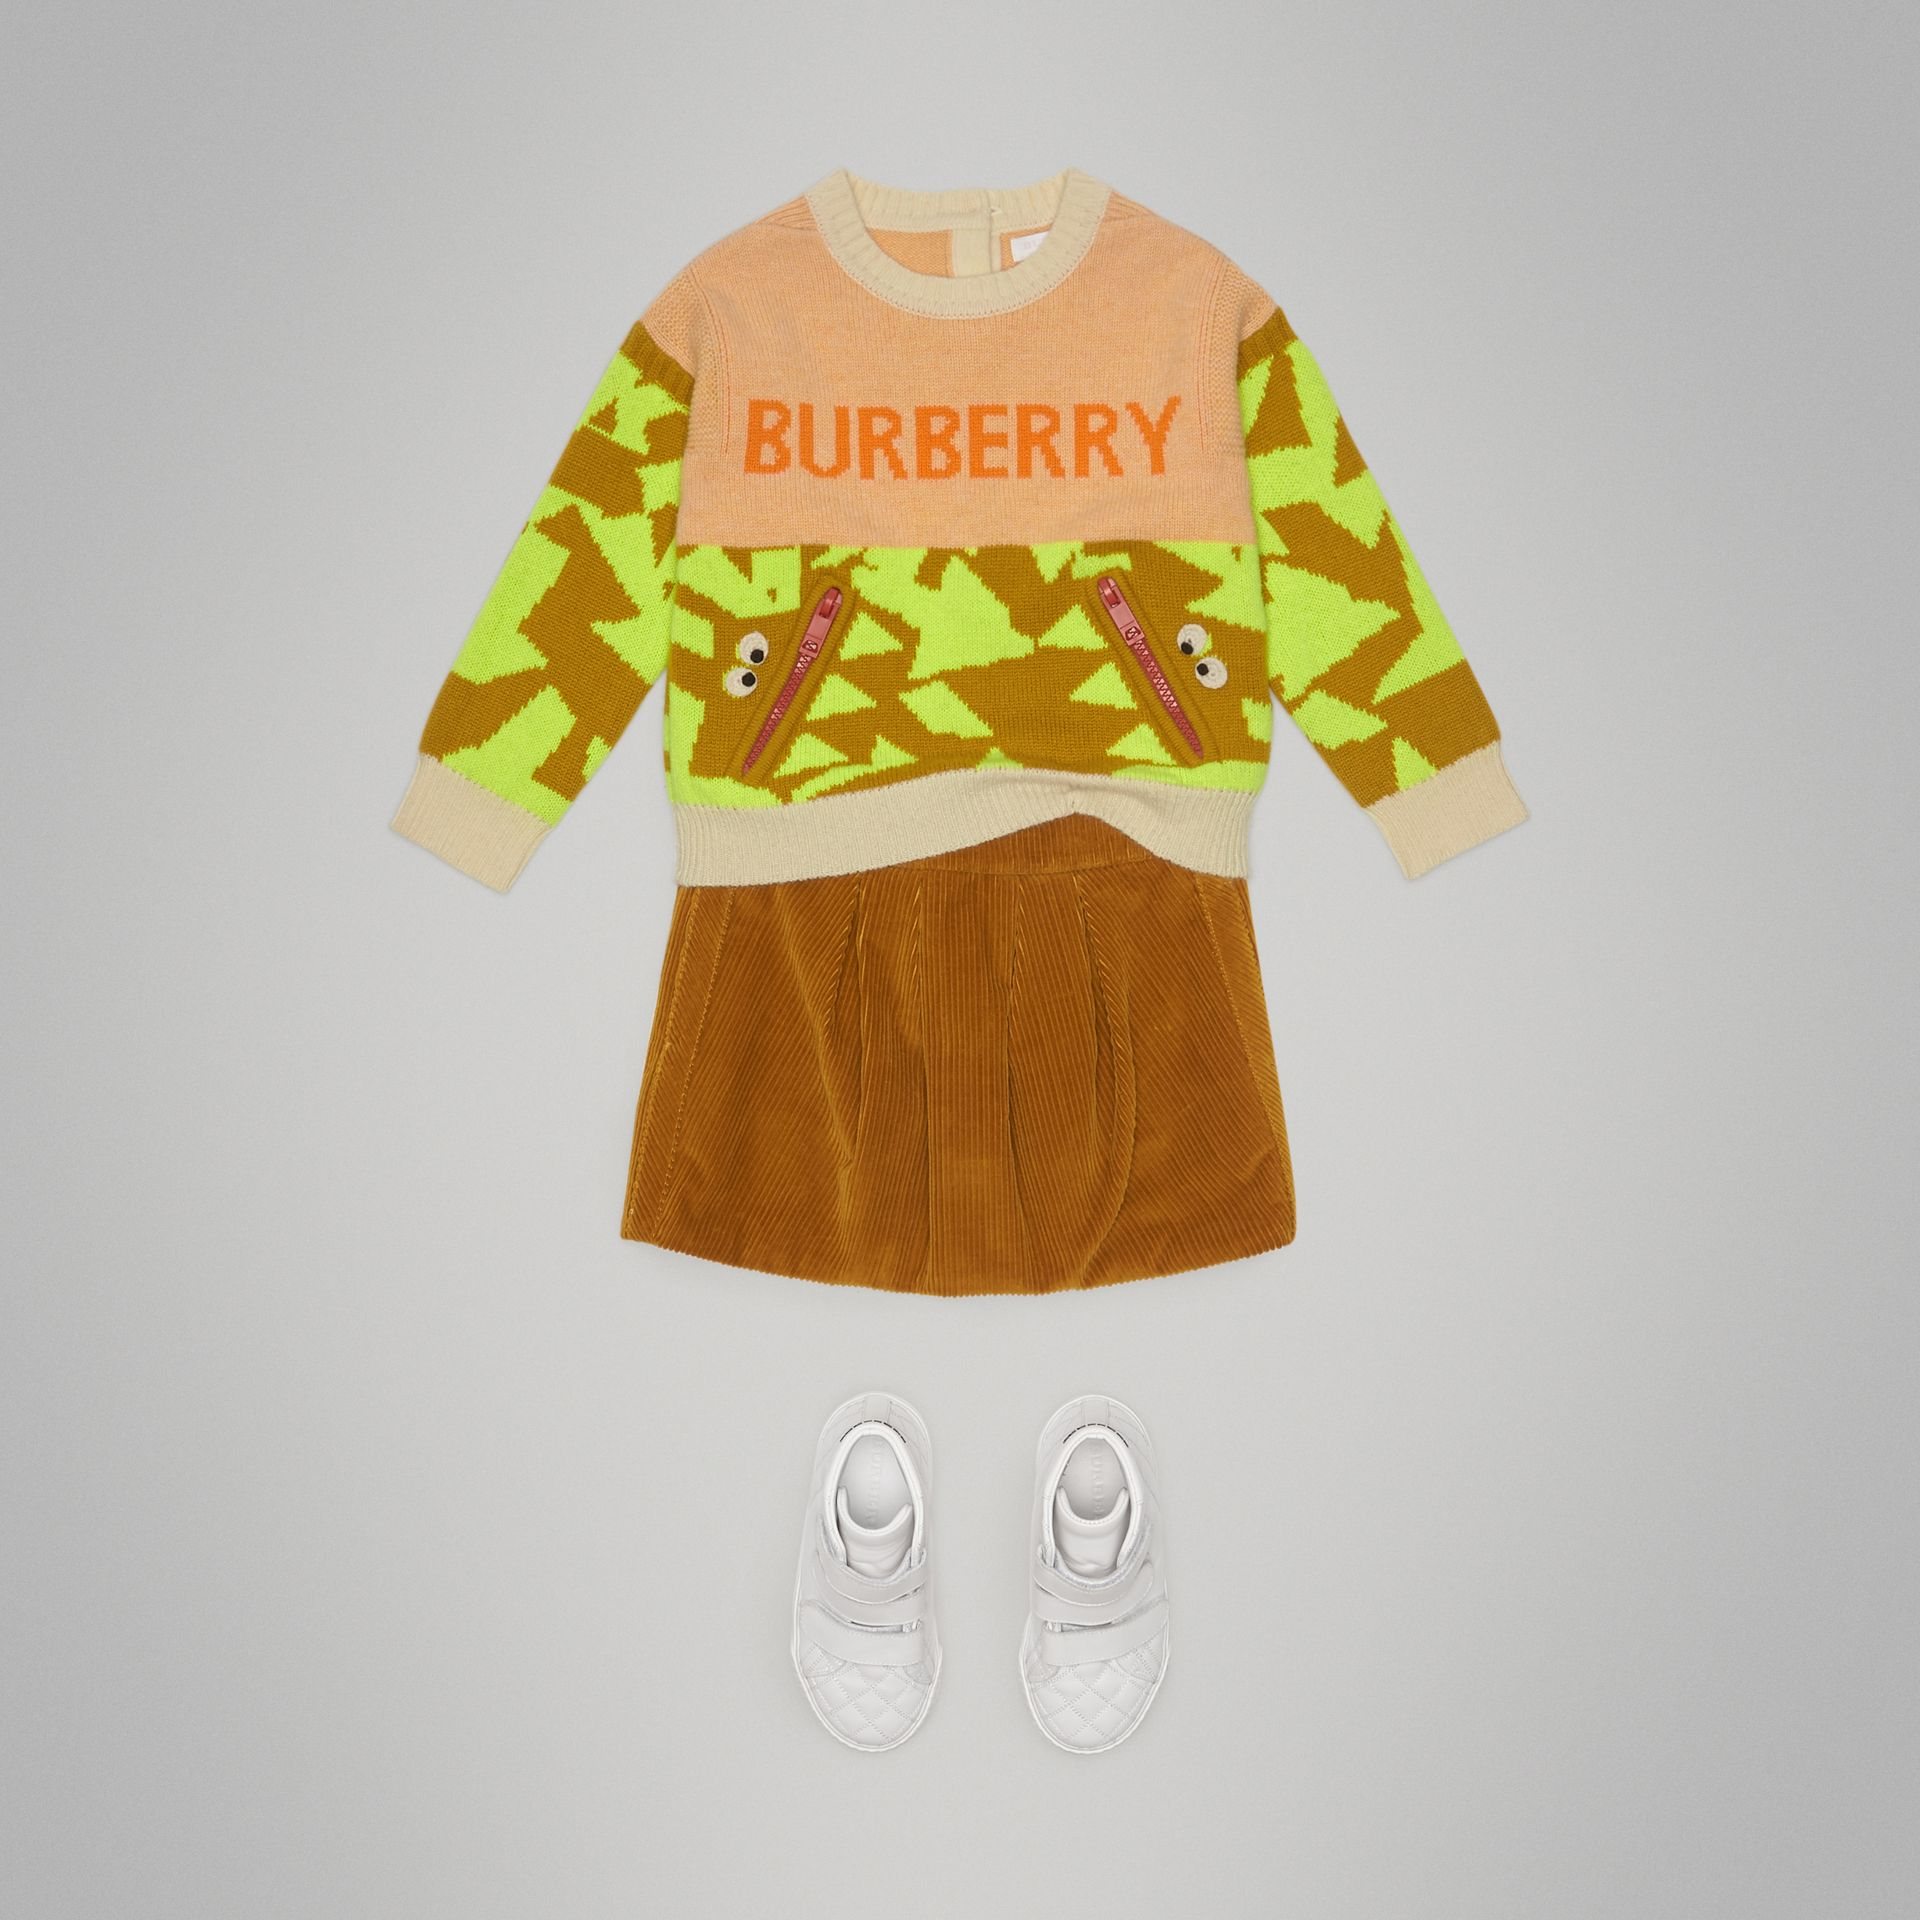 Kaschmirpullover mit Monstermotiv in Intarsienoptik (Orange) | Burberry - Galerie-Bild 2